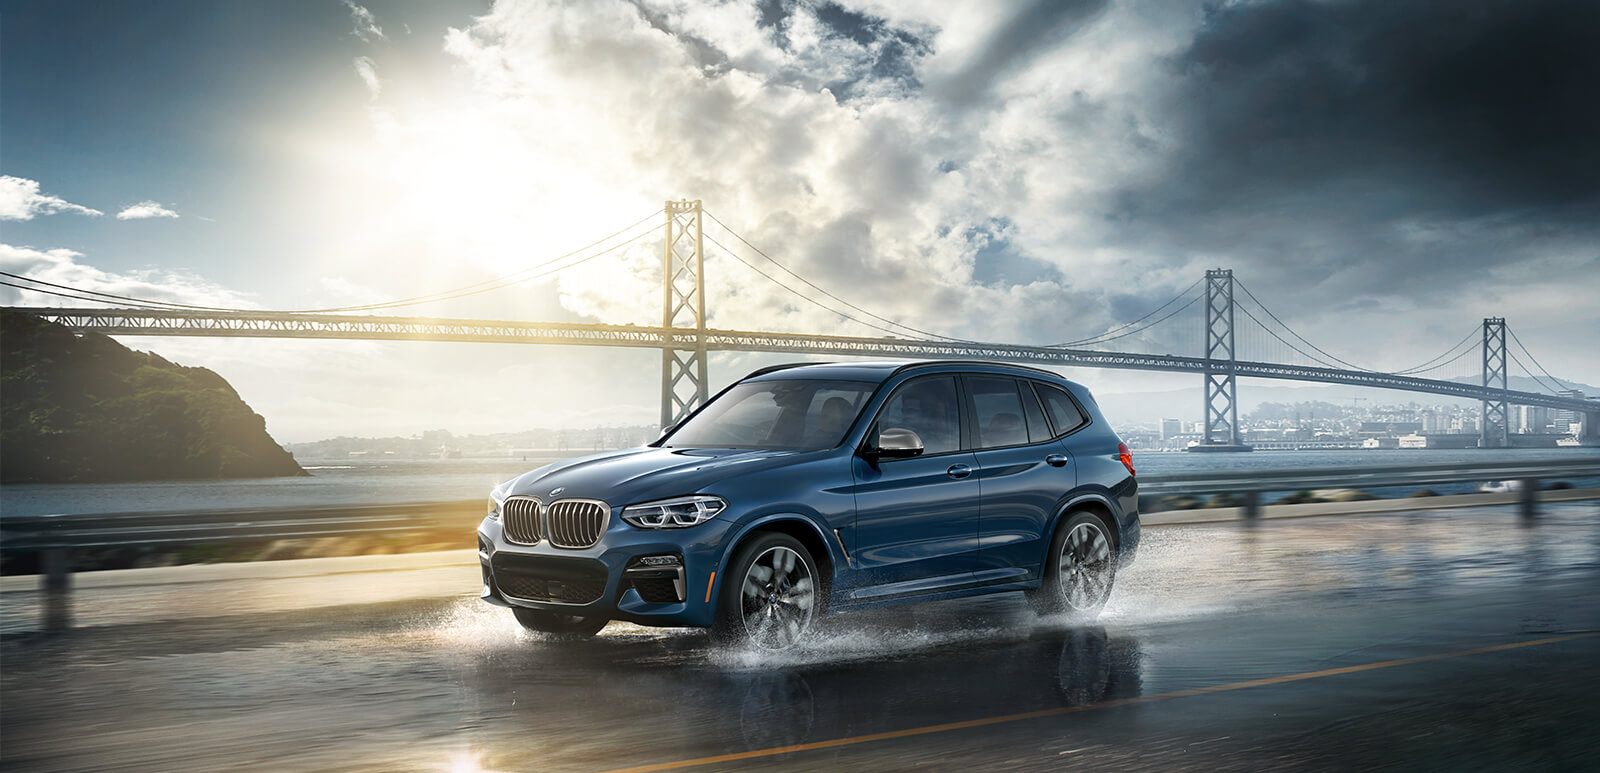 new gallery bmw oem sale cincinnati htm oh xseries near finance lease fma for price and specials